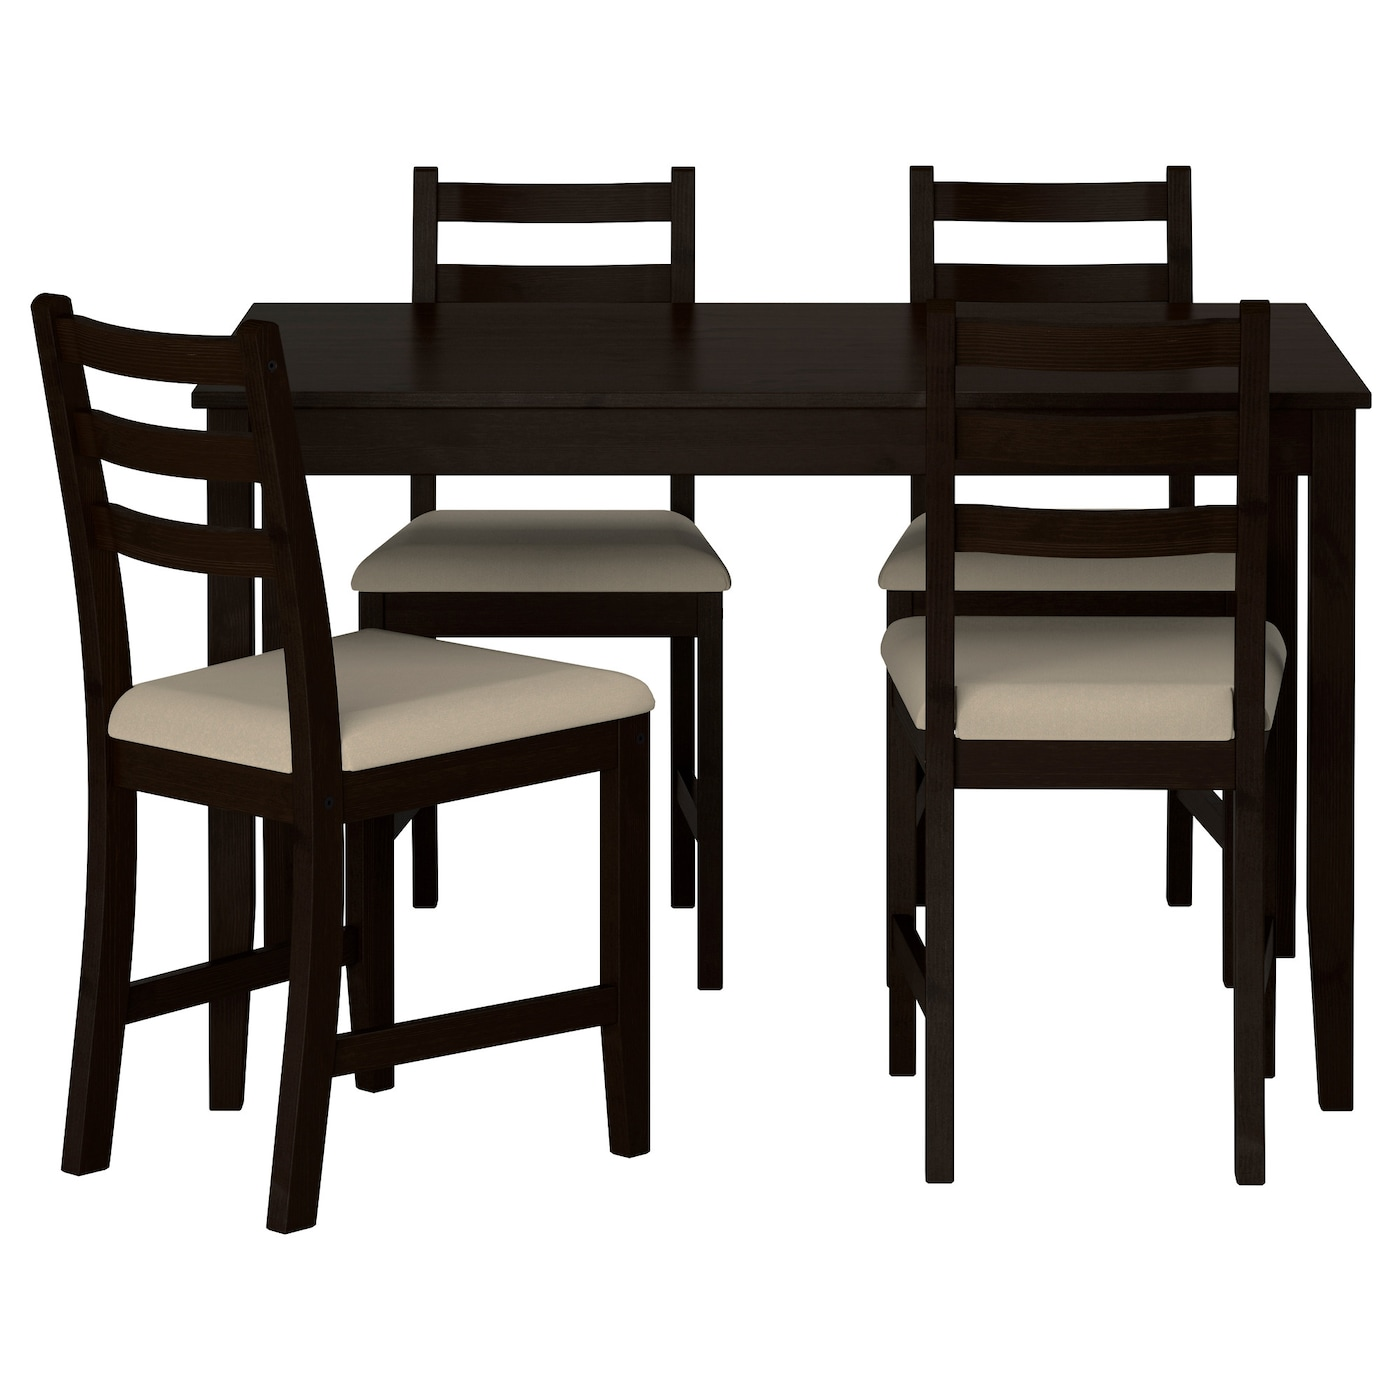 Lerhamn table and 4 chairs black brown ramna beige 118x74 for Small dining table and 4 chairs